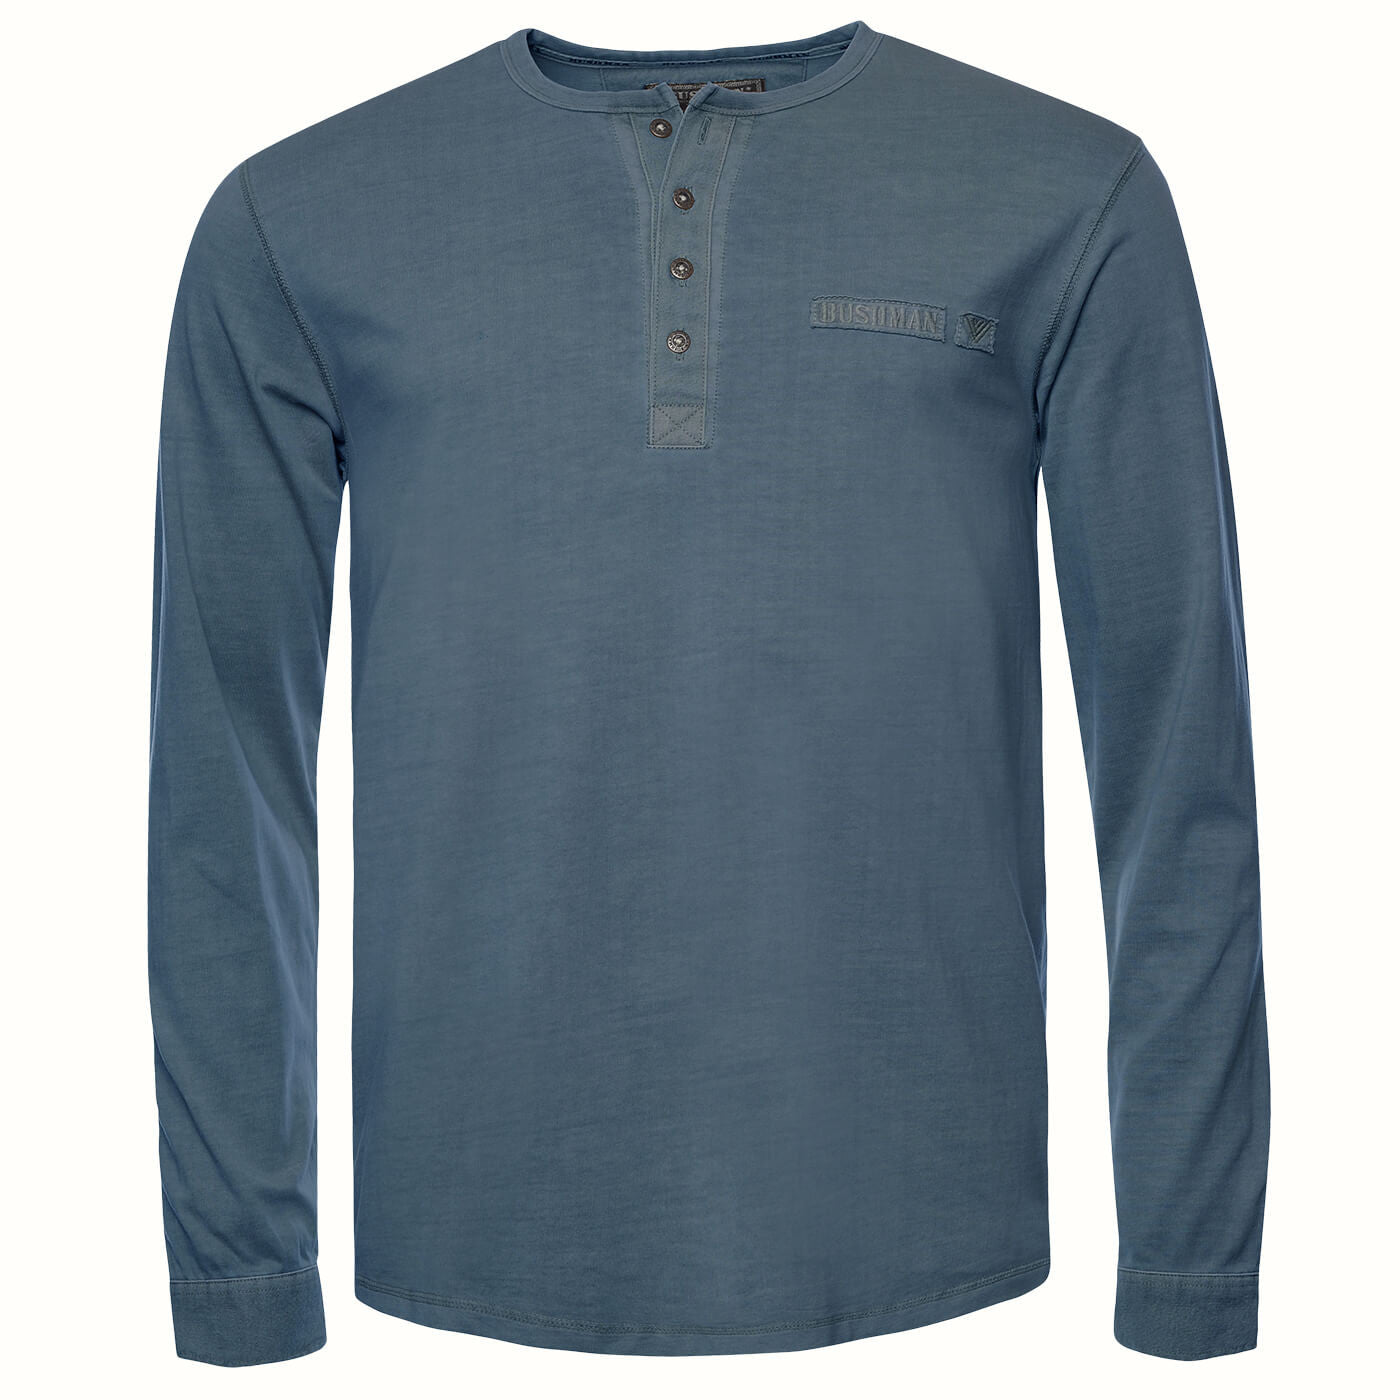 BUSHMANSHOP HOBART MEN'S BLUE KHAKI GREY COTTON LONG SLEEVE HENLEY T-SHIRT